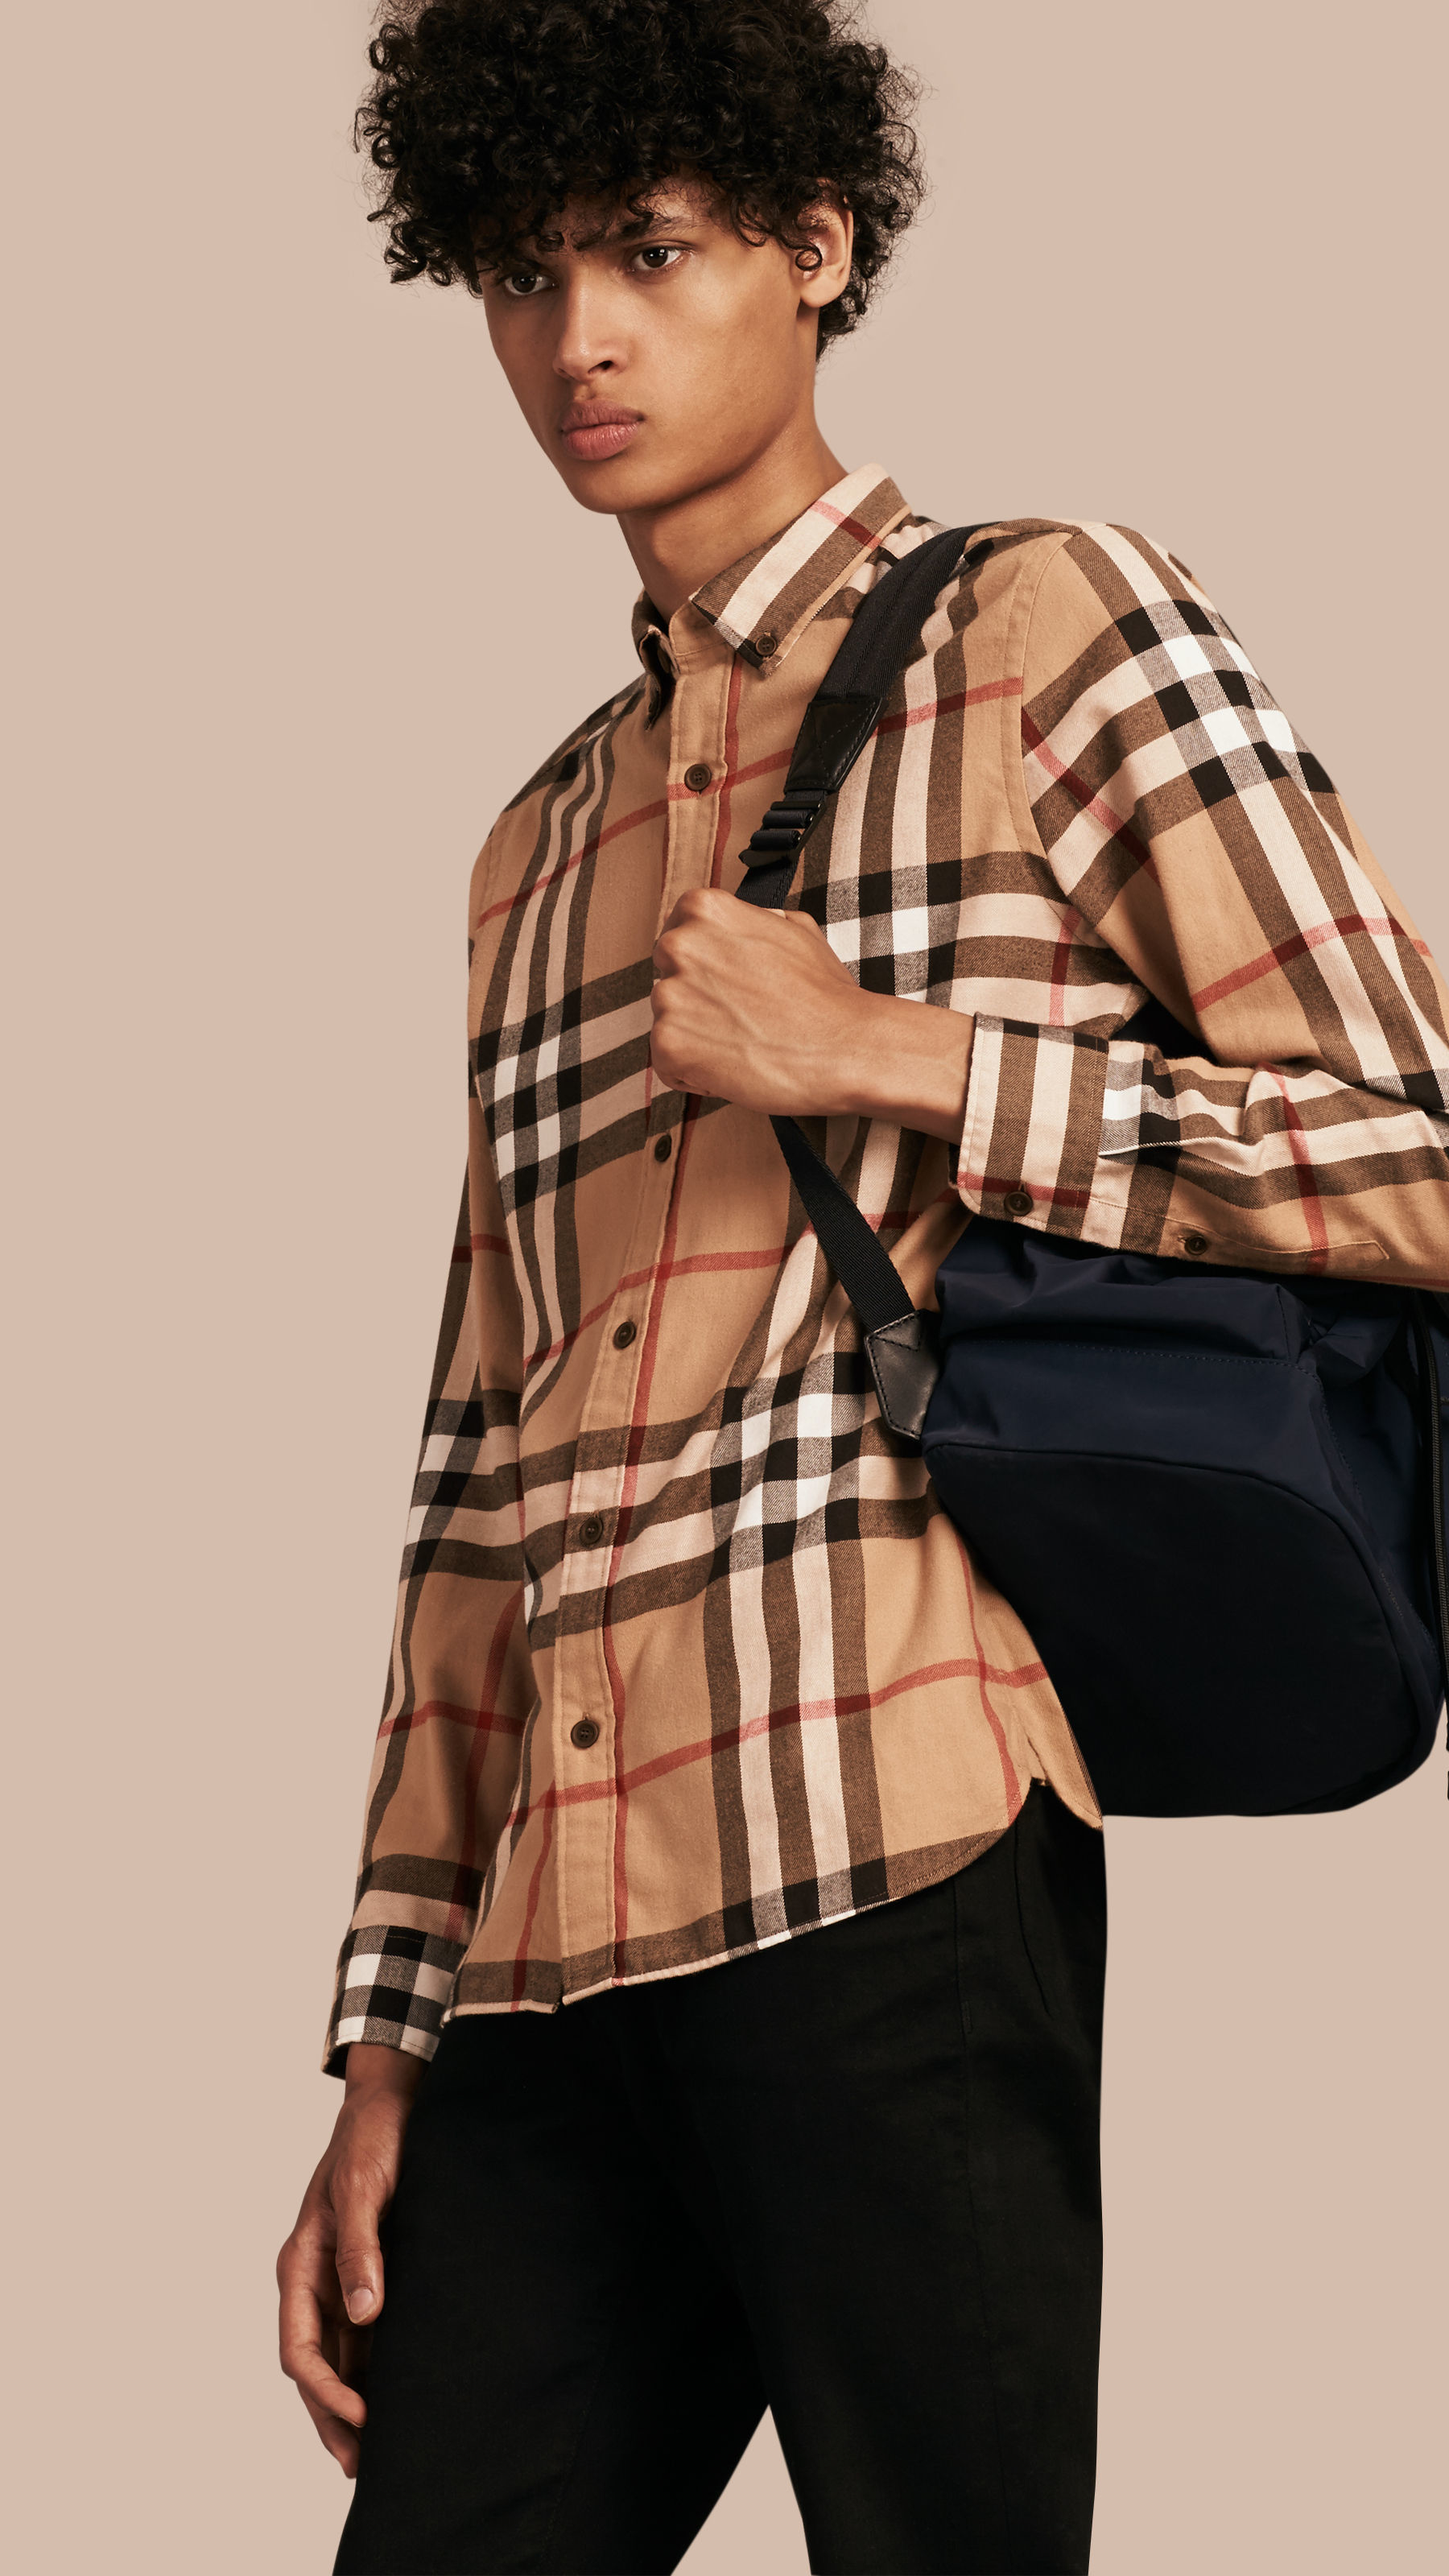 Burberry Check Cotton Flannel Shirt in Orange for Men - Lyst 021861ef3376